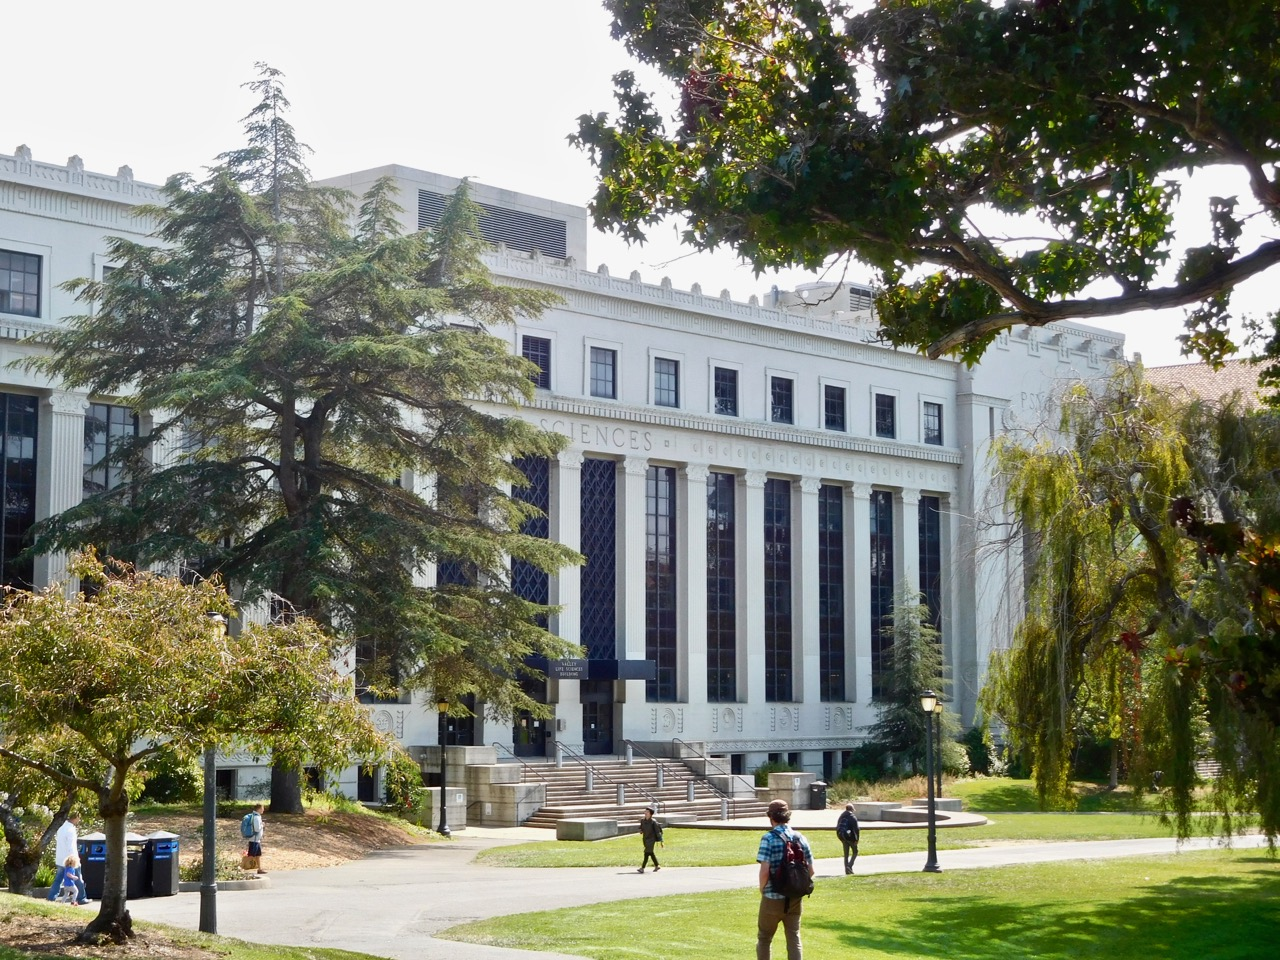 Berkeley university sciences building